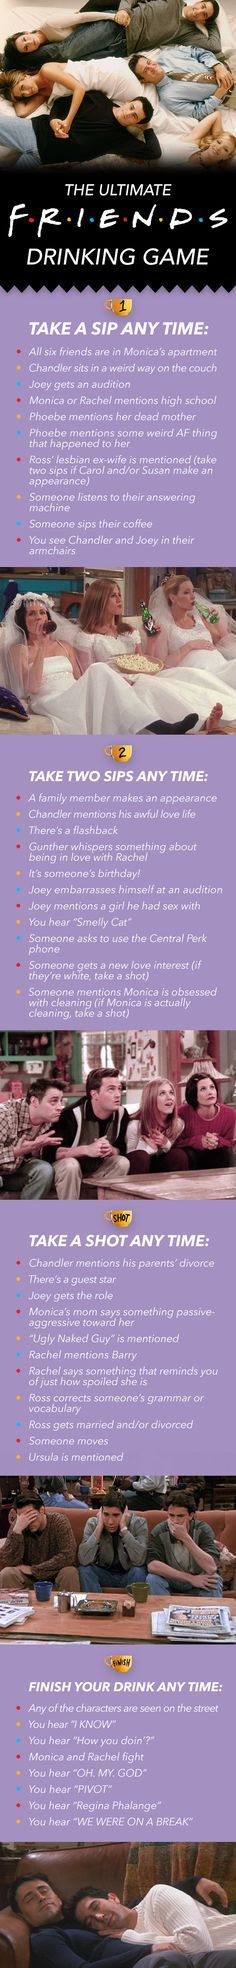 """The Ultimate """"Friends"""" Drinking Game"""